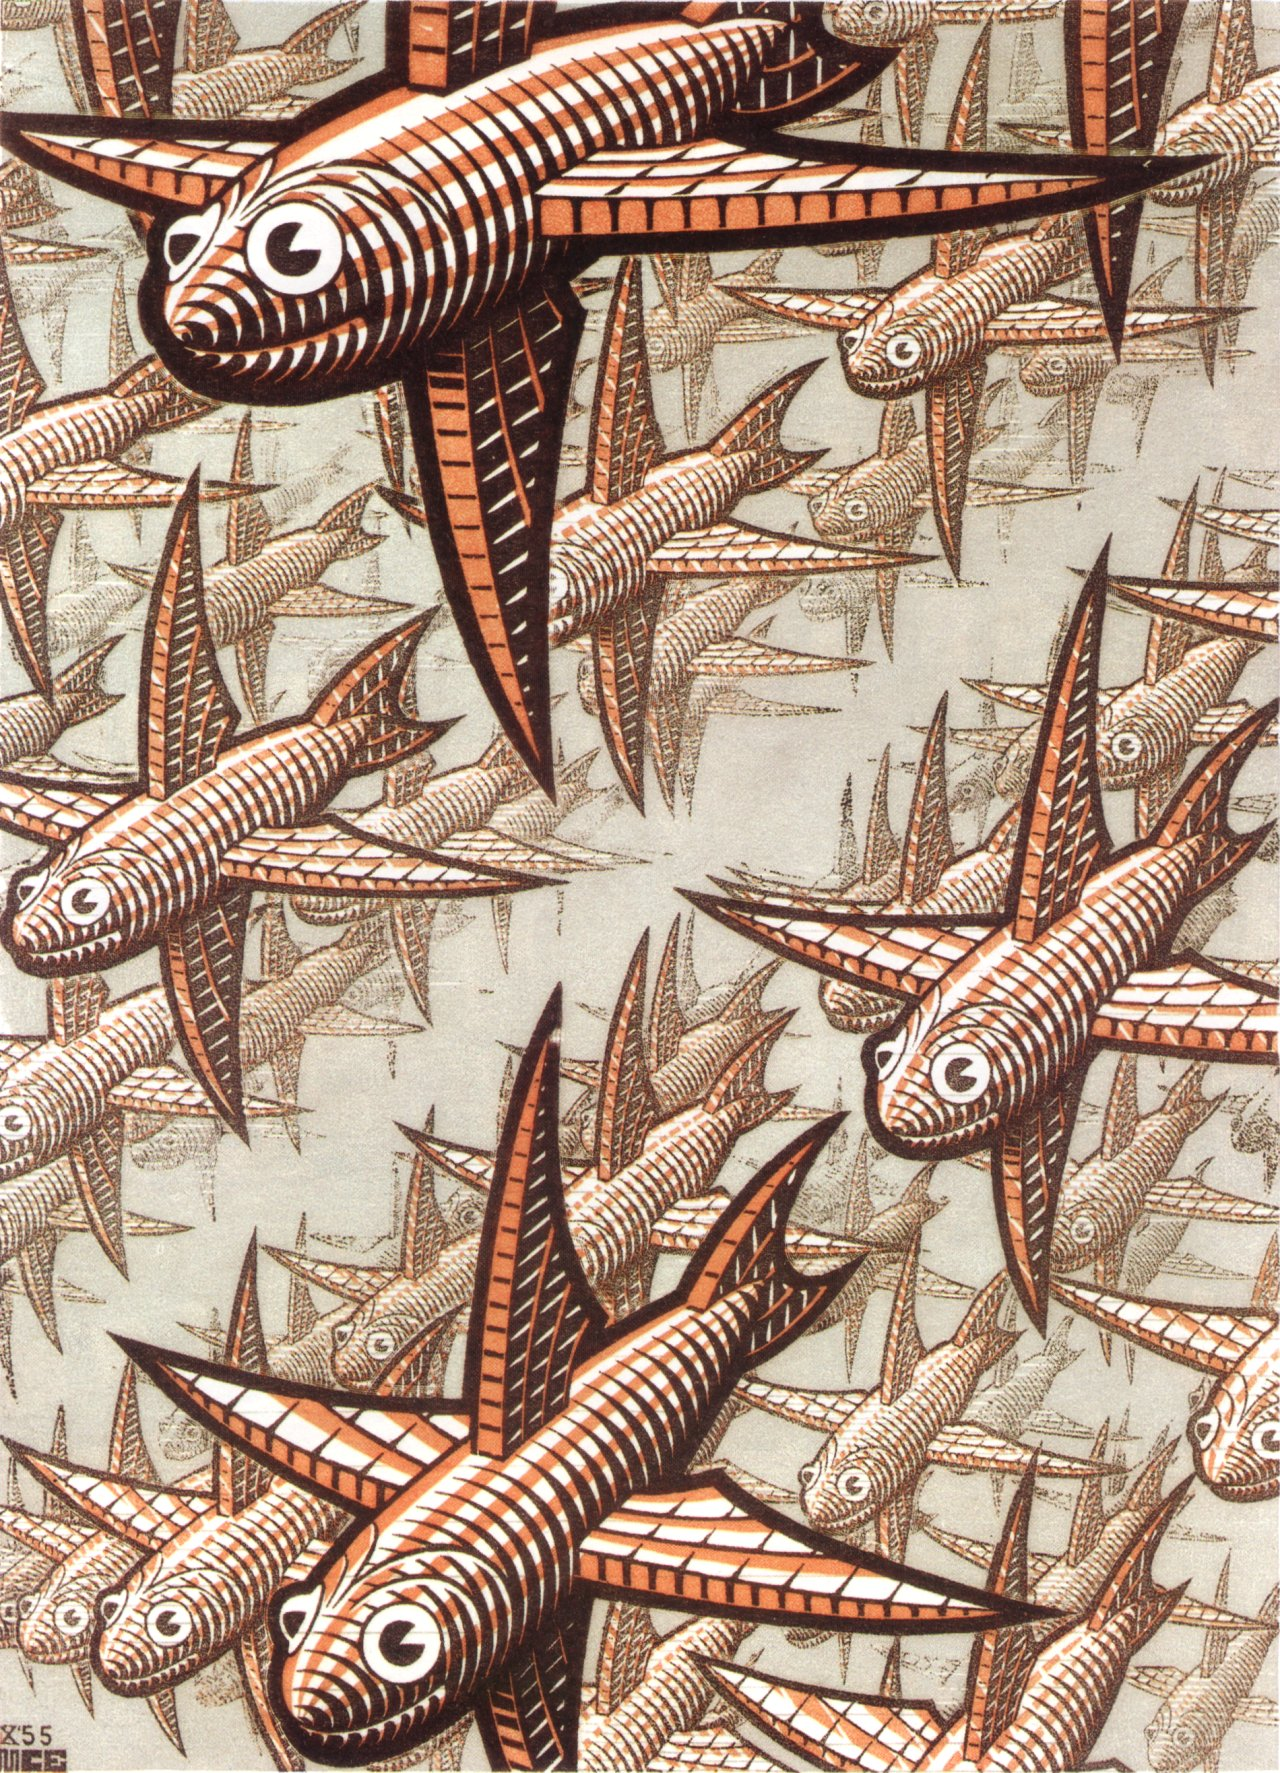 Depth, 1955 by M.C. Escher (wood engraving of fish)